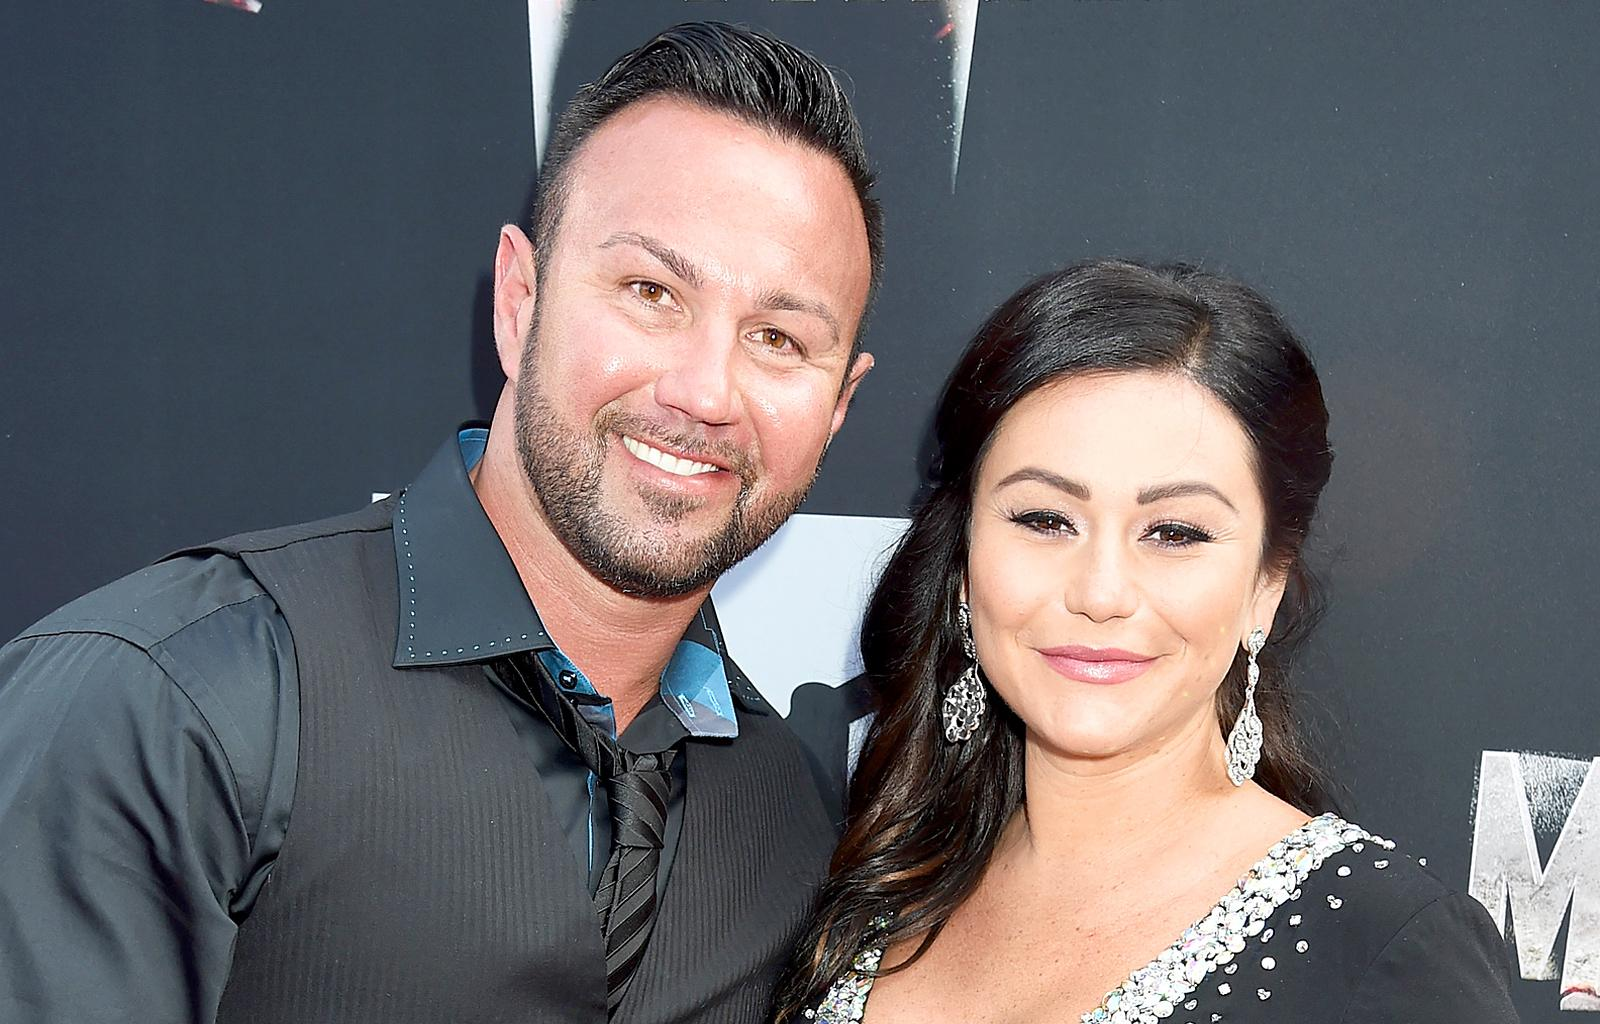 JWoww Finalizes Divorce With Roger Mathews After Year-Long Battle